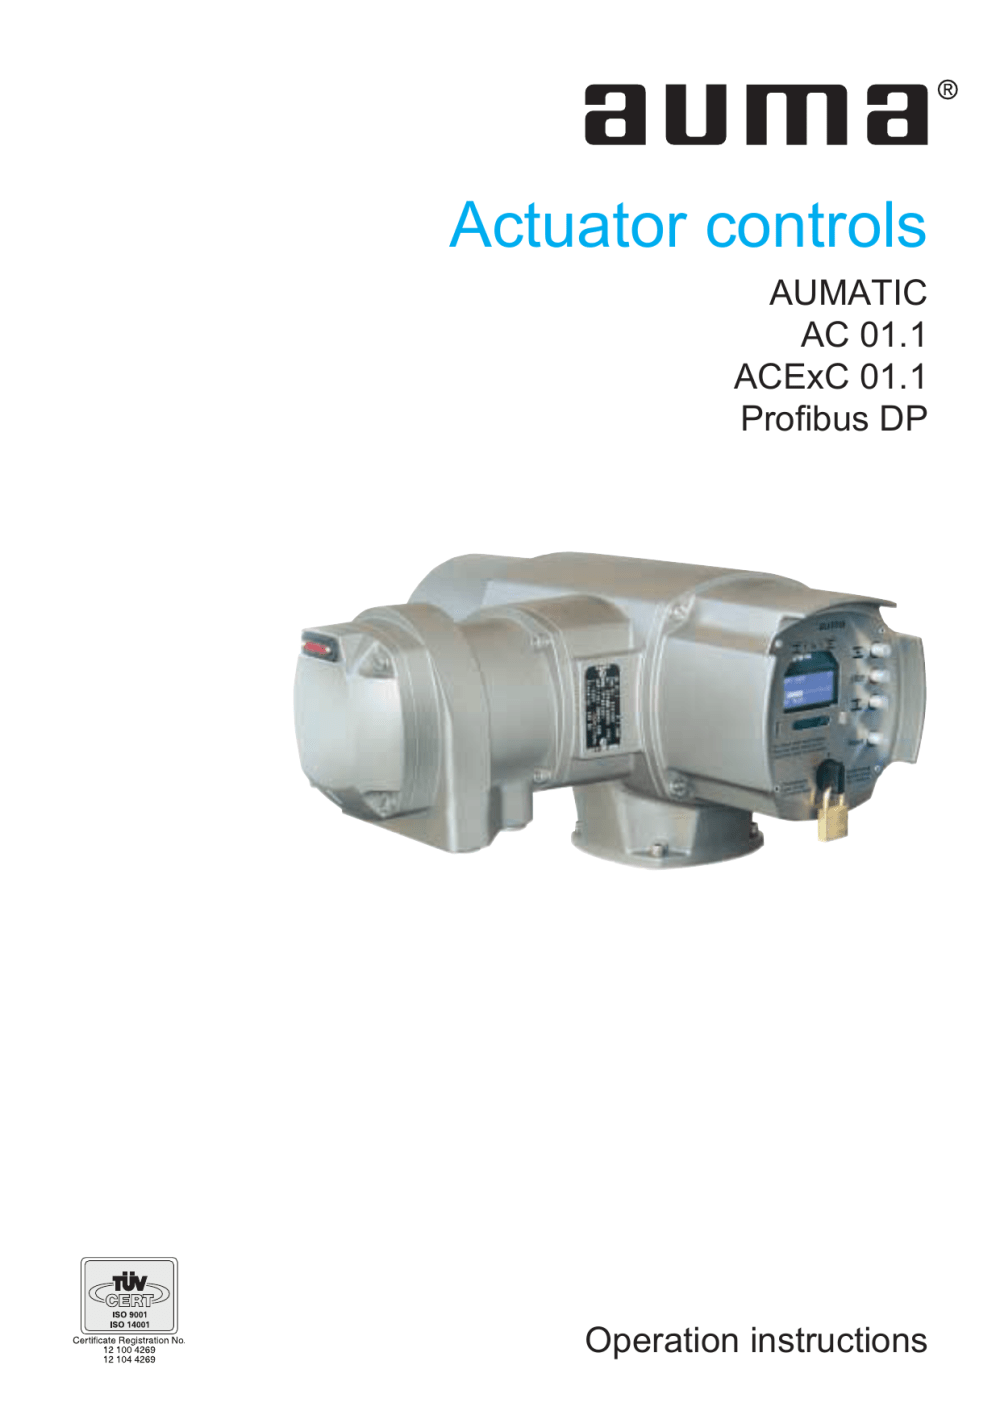 medium resolution of operation instructions actuator controls aumatic ac 01 1 acexc